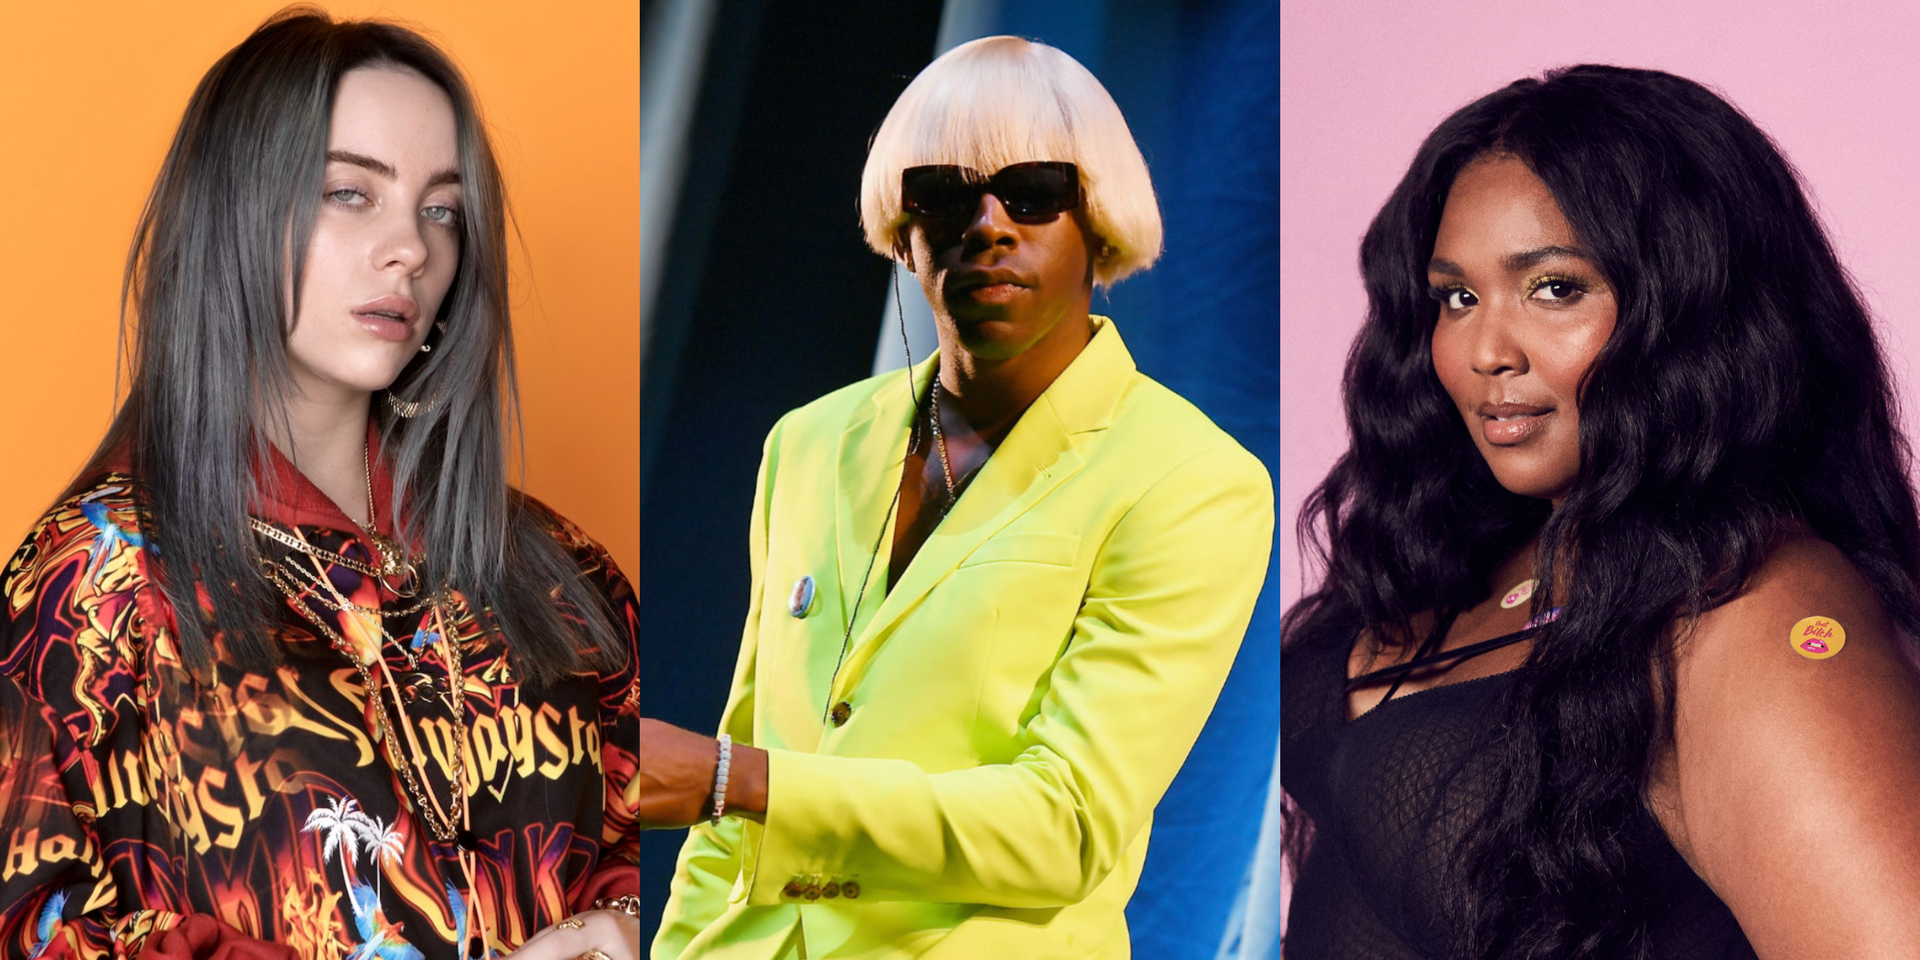 Here are the nominations for the 2020 Grammy Awards